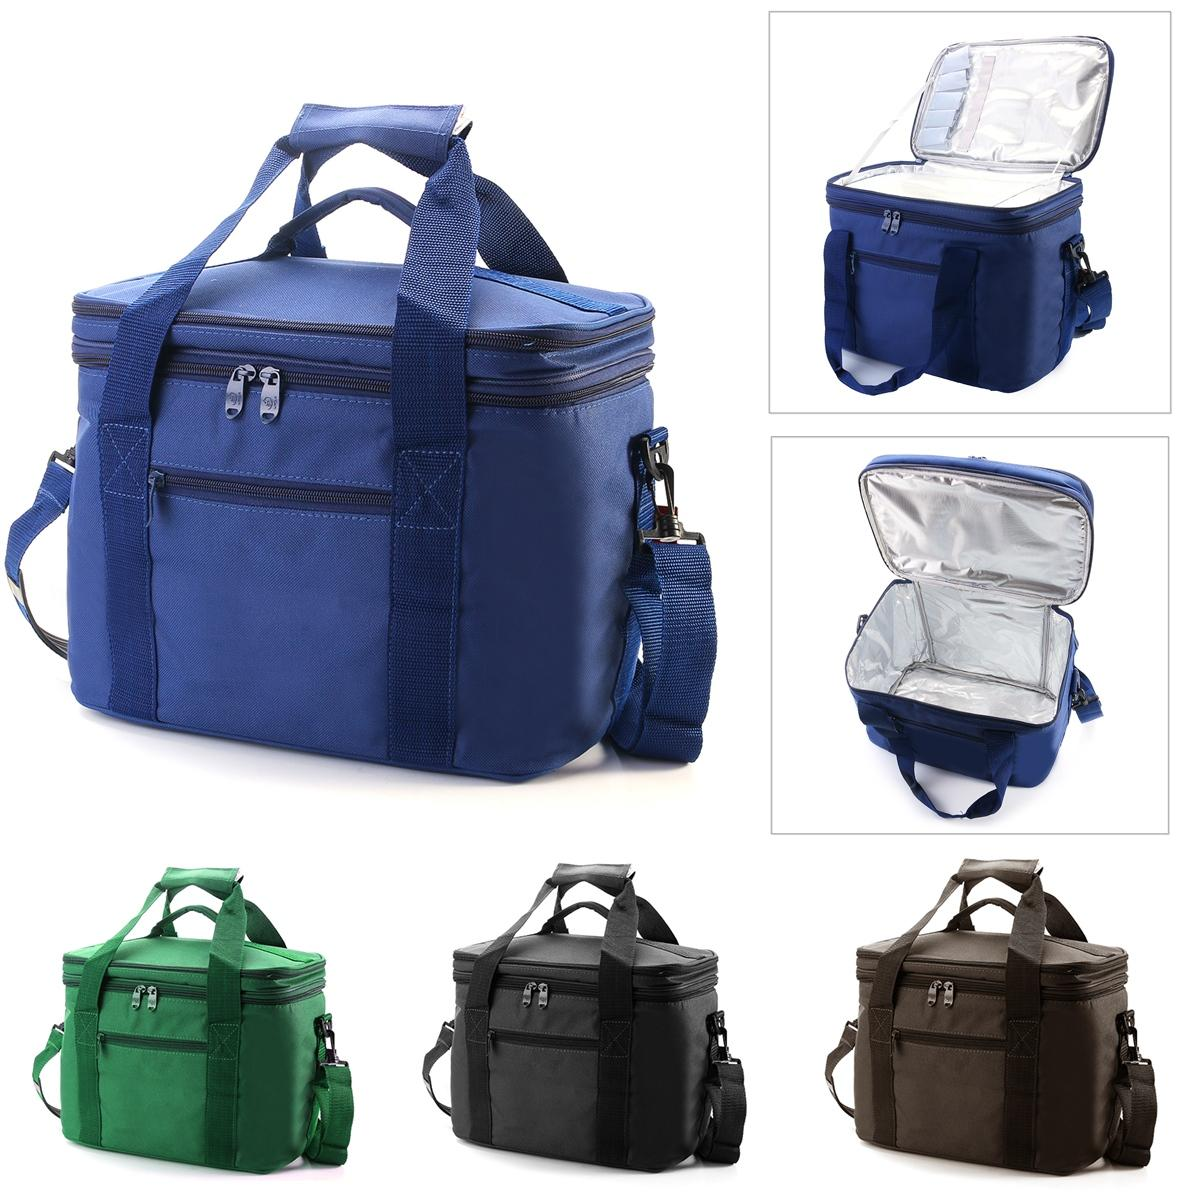 3a4b261abb83 33x20x27cm Oxford Double layer Insulated Lunch Bag Large Capacity Travel  Outdoor Picnic Tote Bag